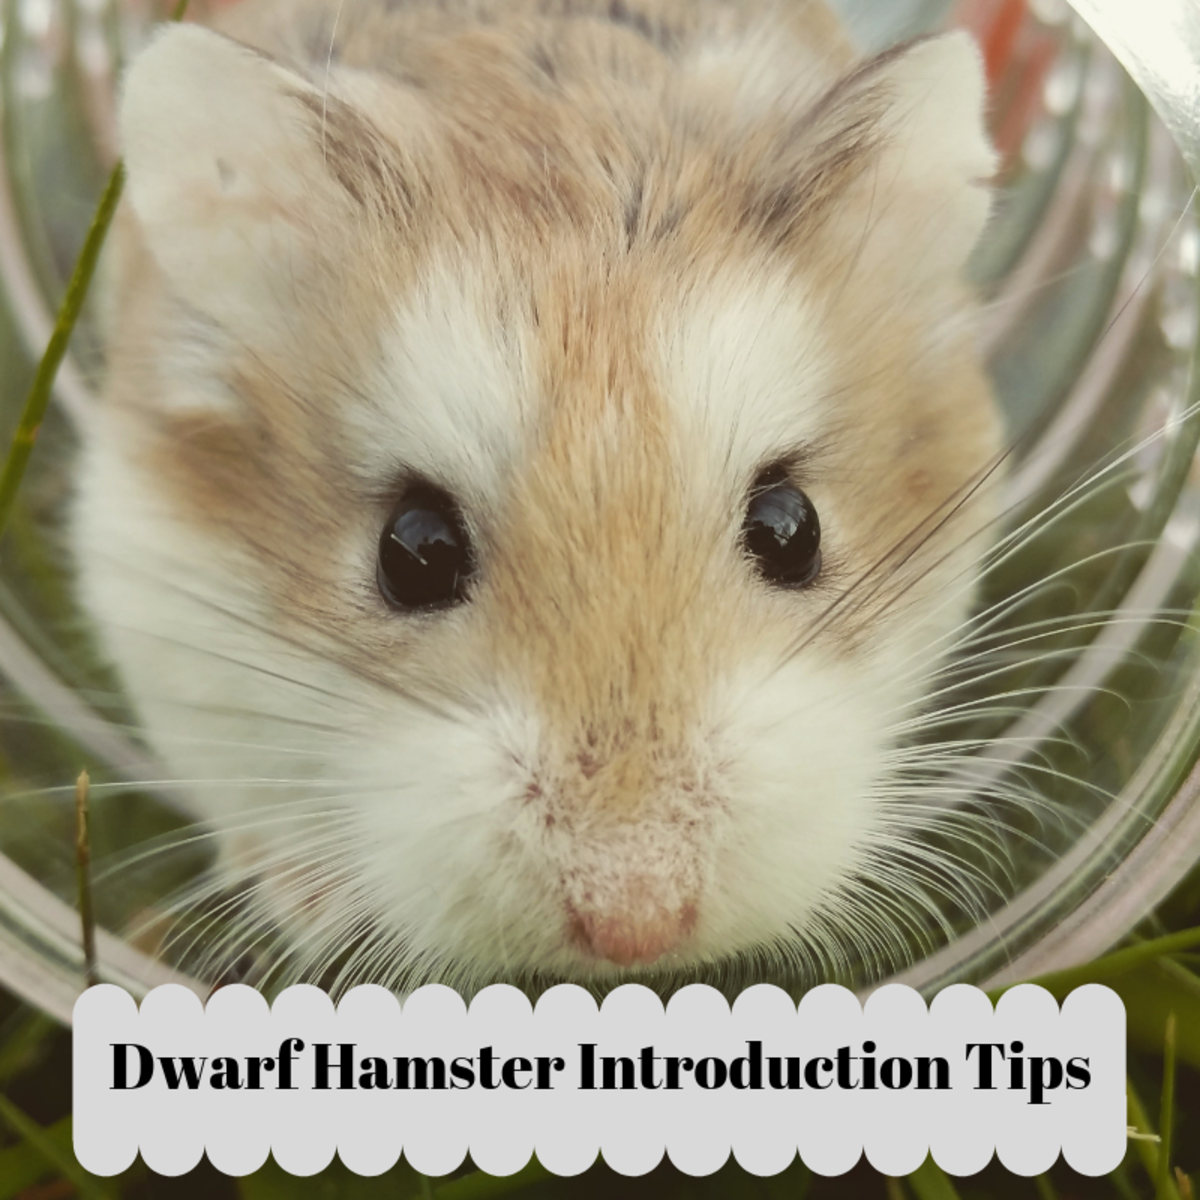 How to Introduce a New Dwarf Hamster into Your Current Hamster's Home